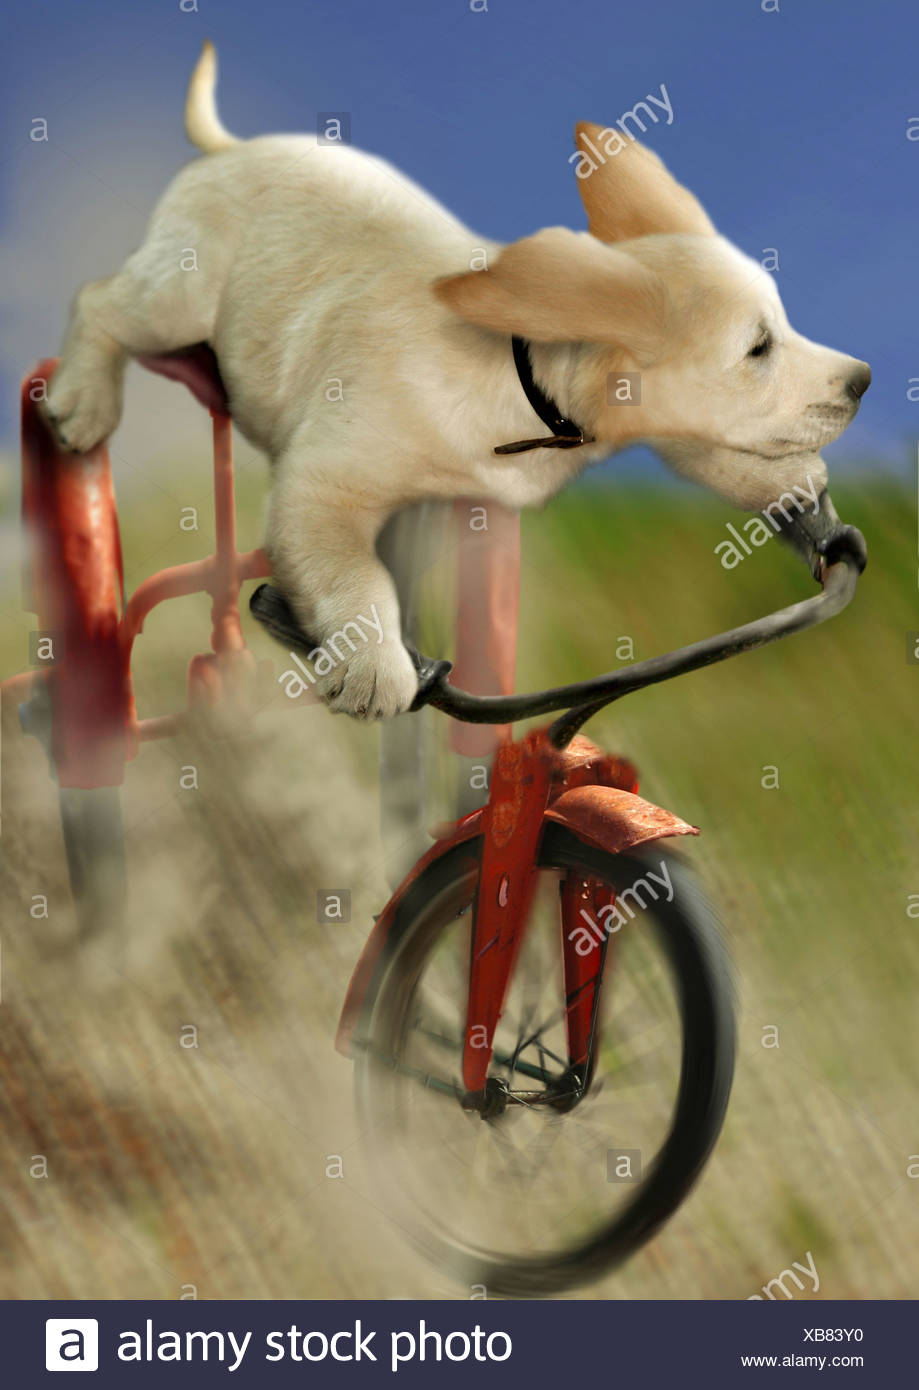 Golden Retriever - puppy on bike Stock Photo: 282305828 - Alamy